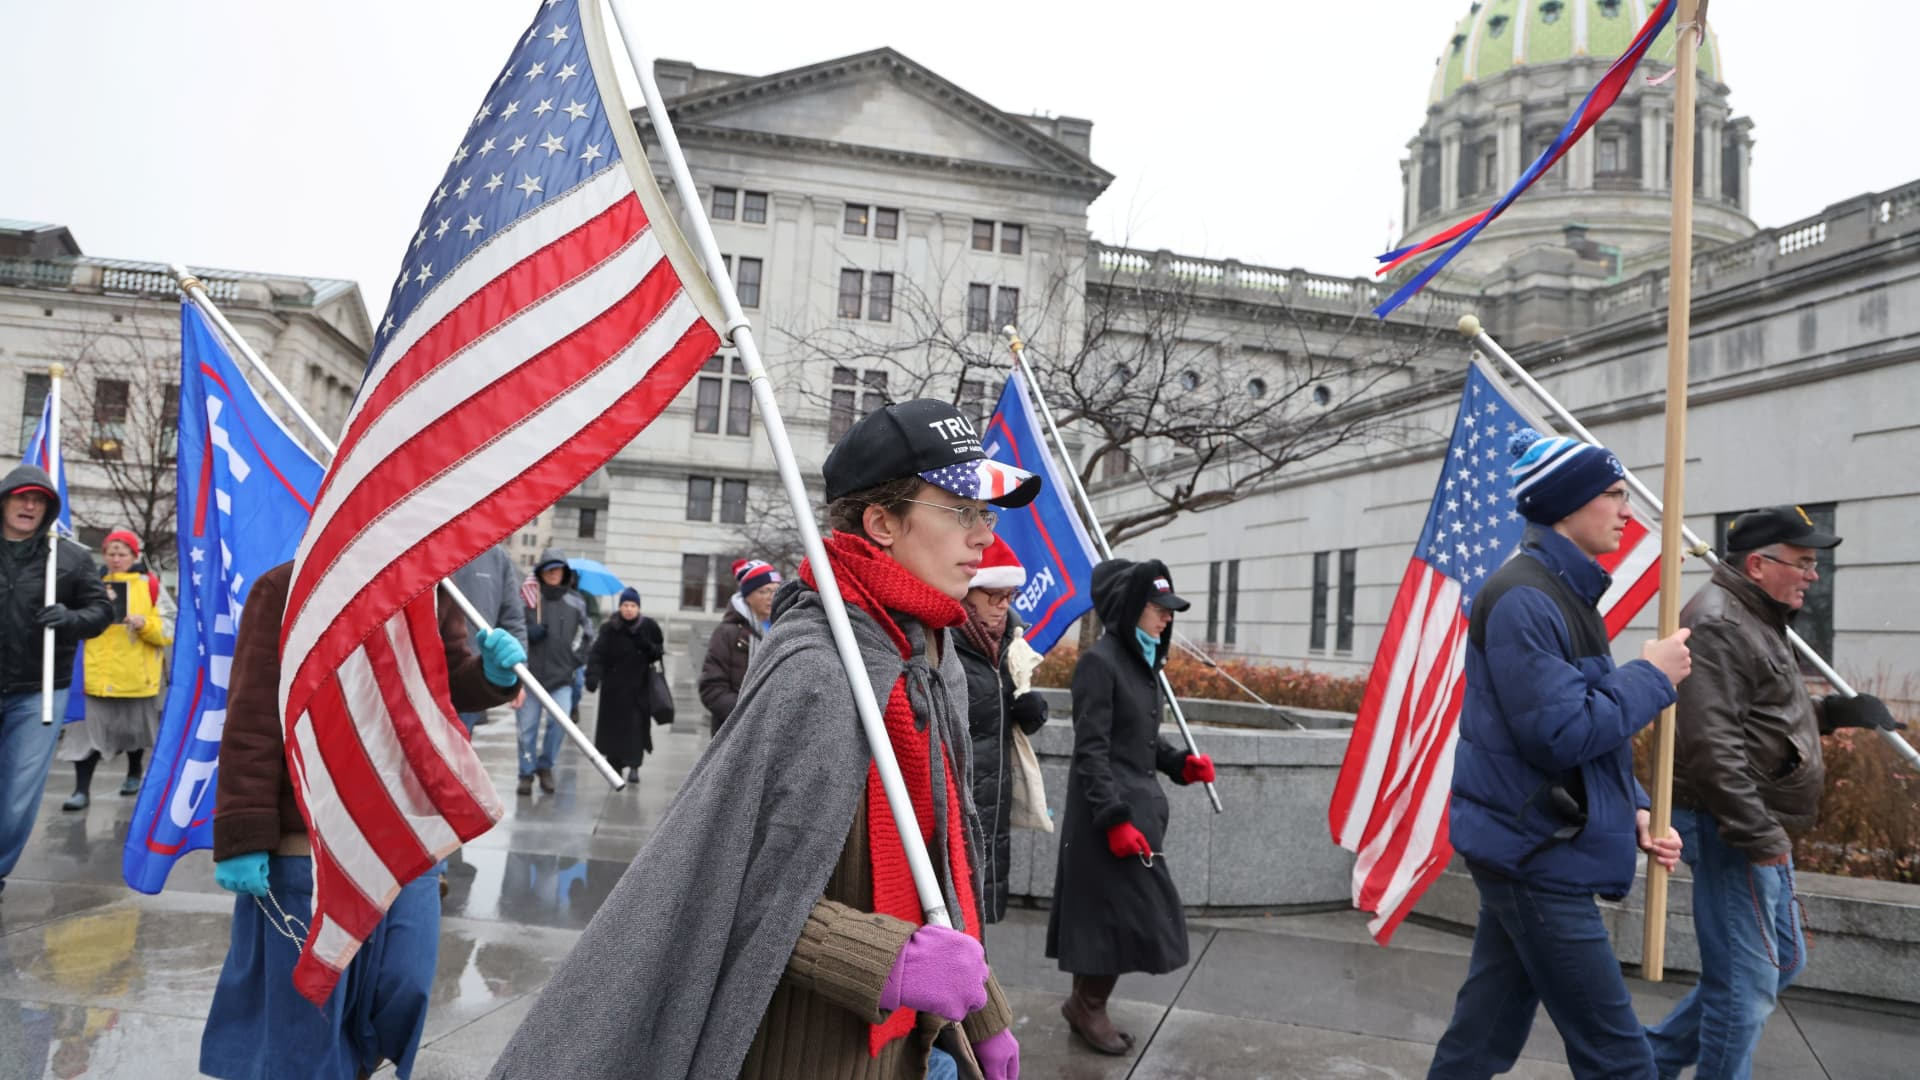 A small band of Trump supporters march with flags as electors gathered to cast their votes for the U.S. presidential election at the State Capitol complex in Harrisburg, Pennsylvania, U.S. December 14, 2020.